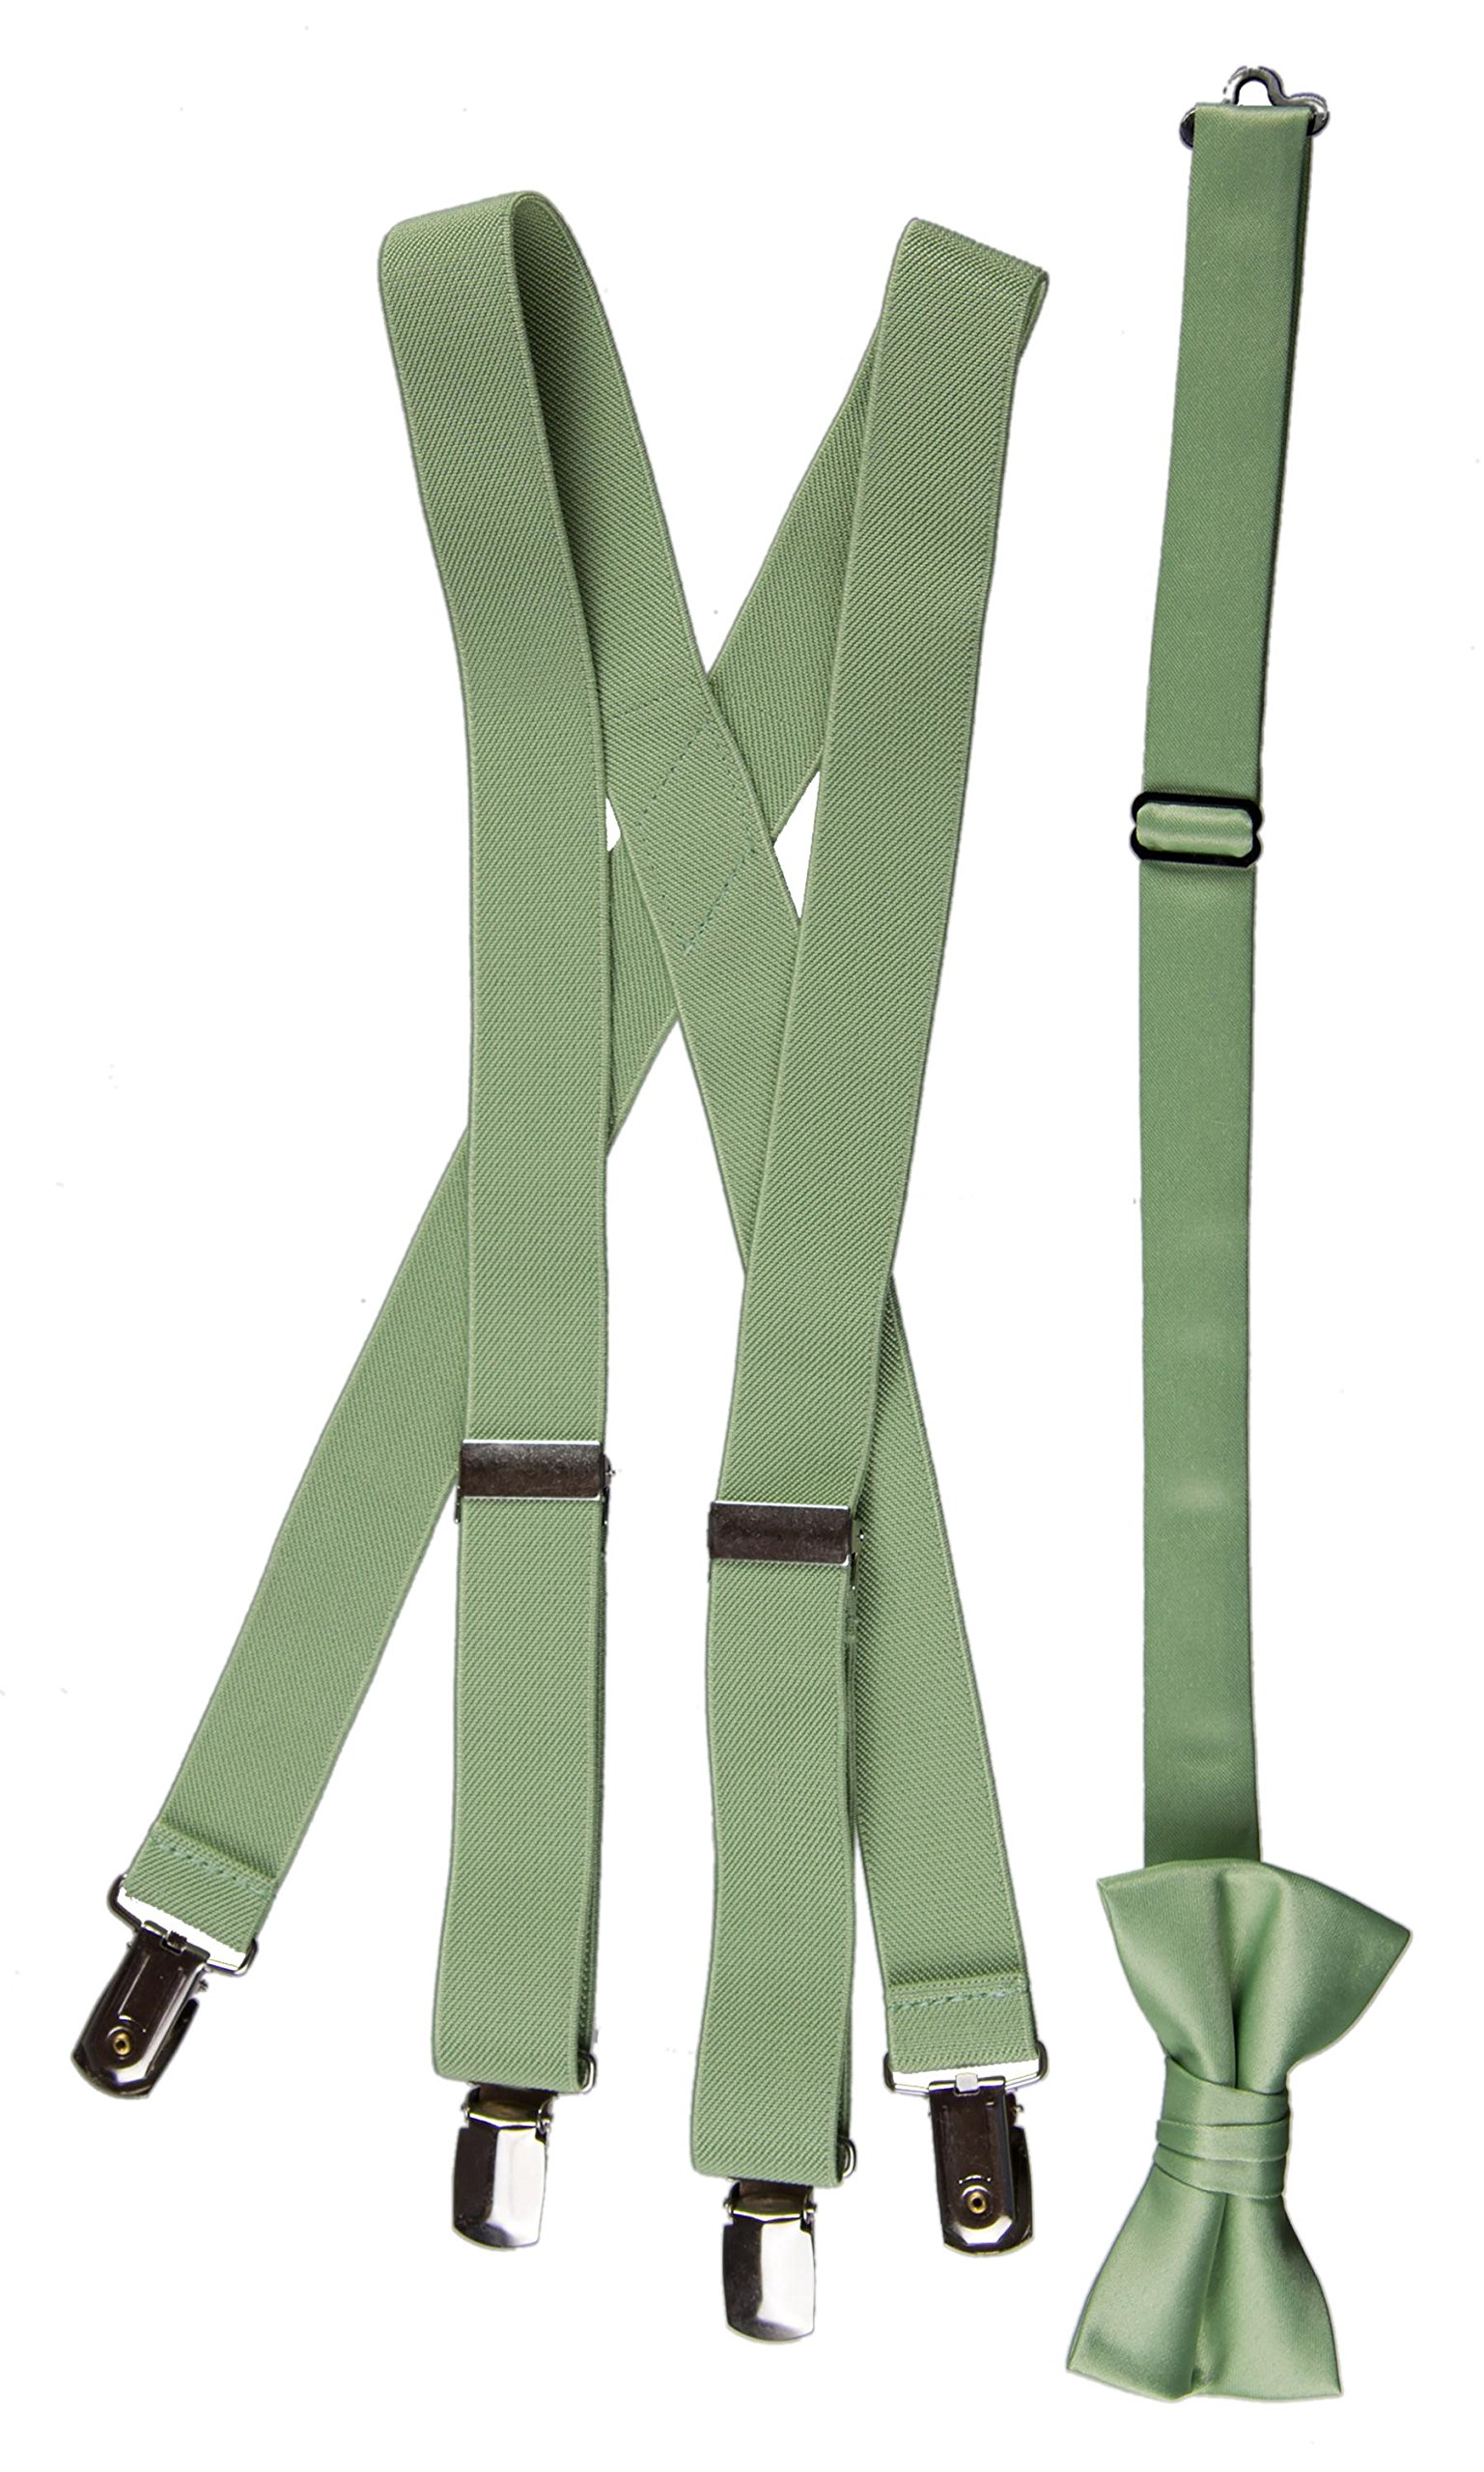 Matching Adjustable Suspender and Bow Tie Sets in Toddler, Boys, Youth, and Adult Sizes (Sage Green, Boys 30'')